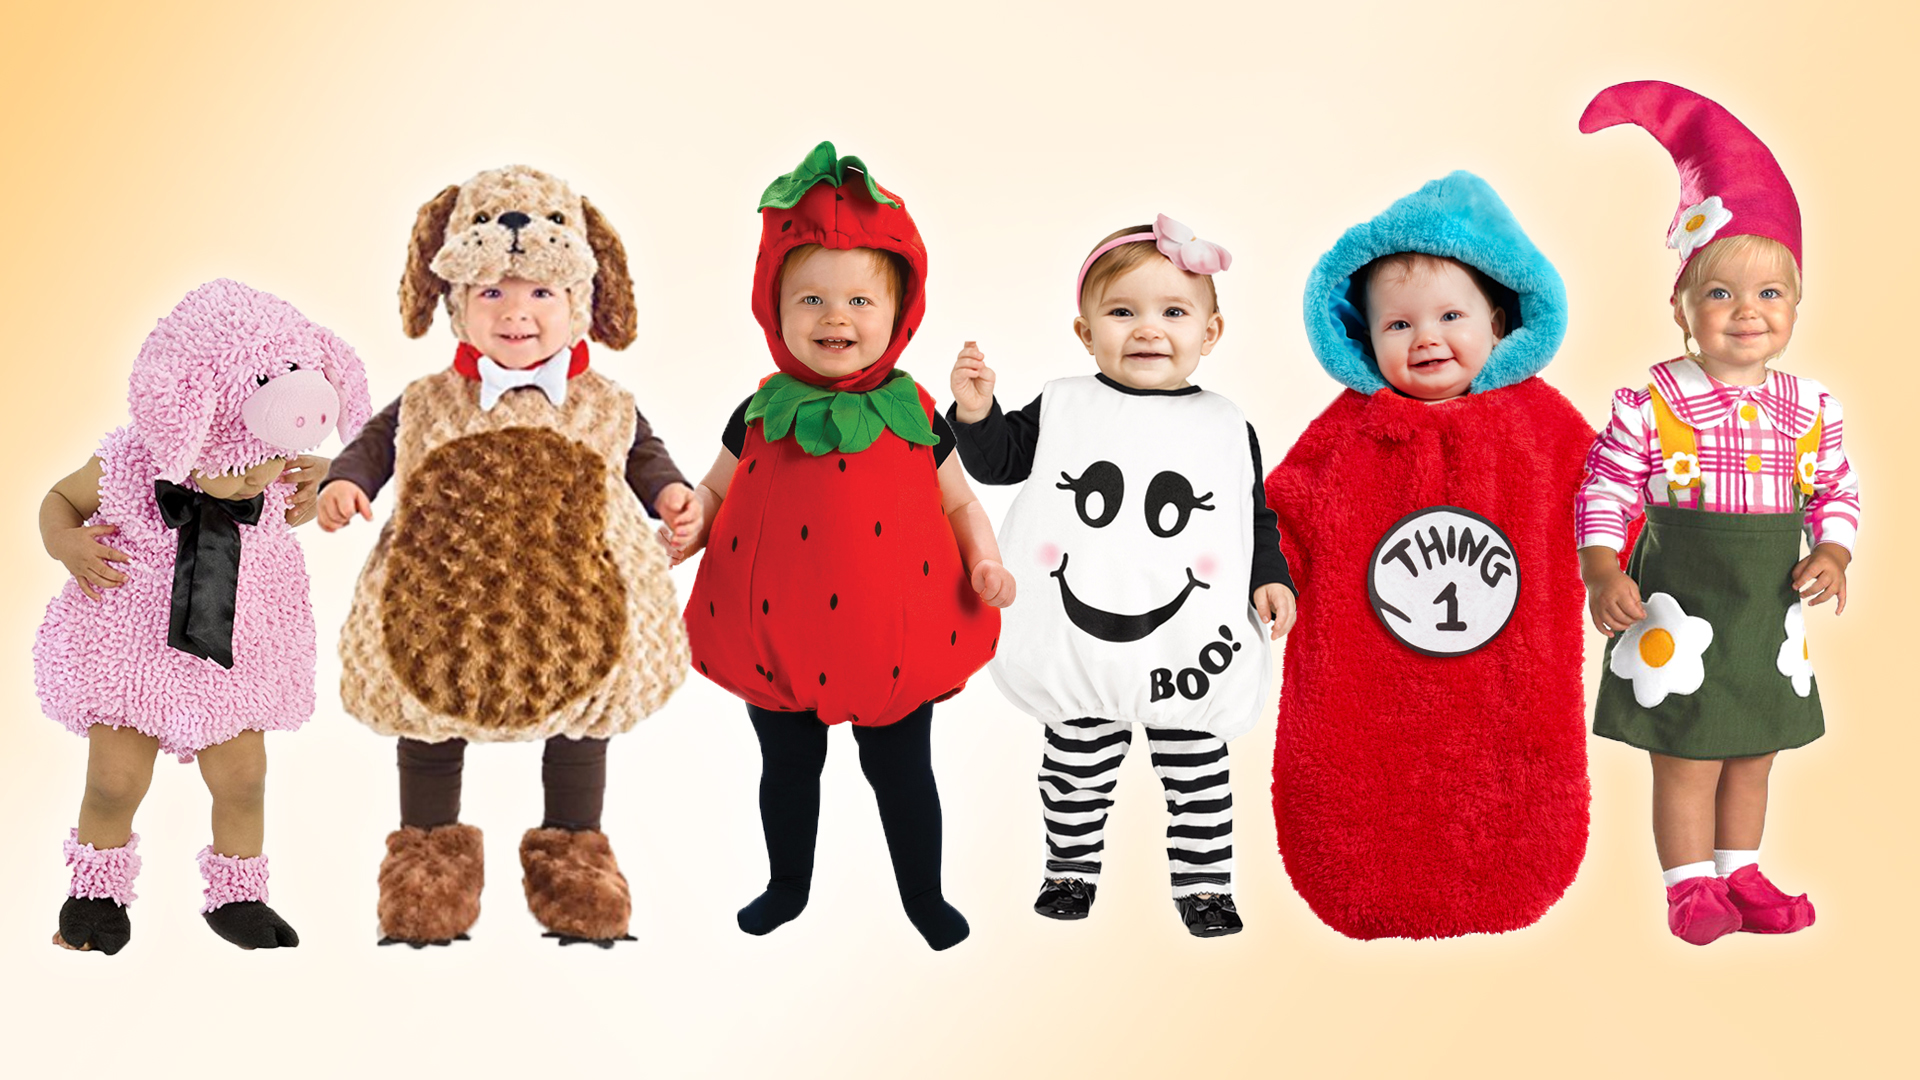 sc 1 st  Today Show & The most popular baby and toddler Halloween costumes